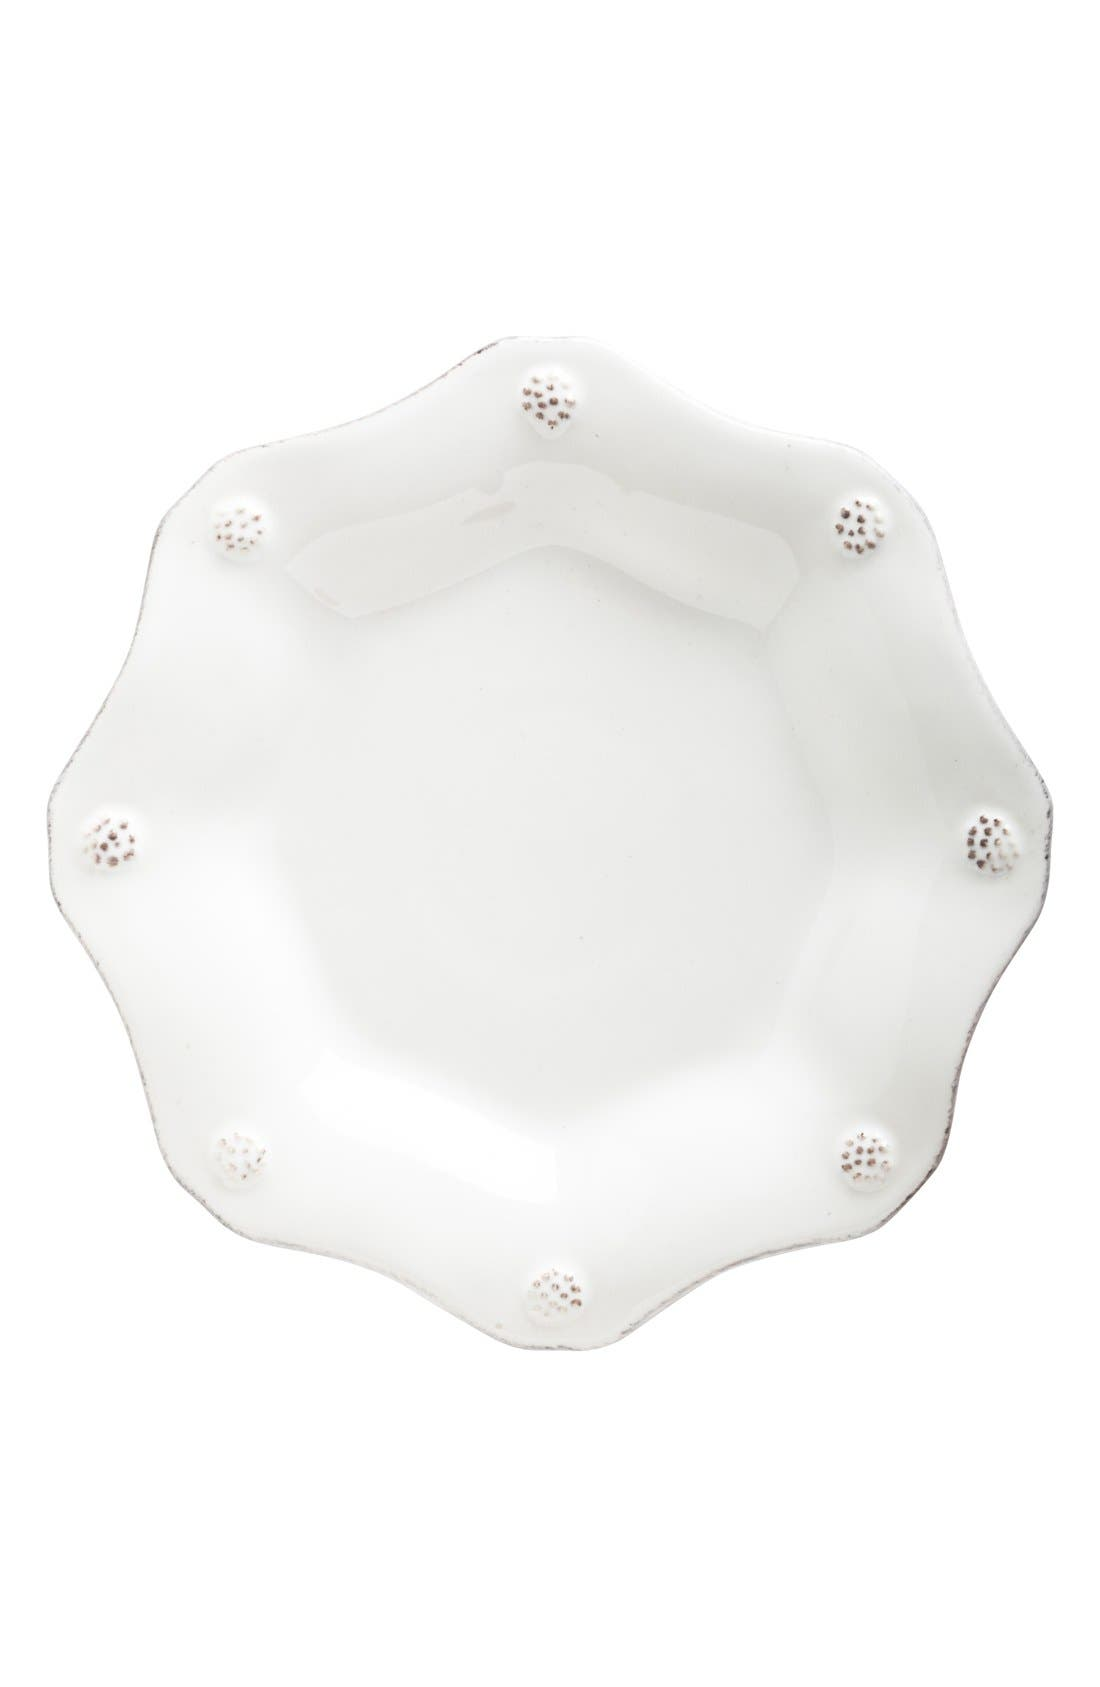 'Berry and Thread' Scalloped Tea Plate,                             Main thumbnail 1, color,                             WHITEWASH